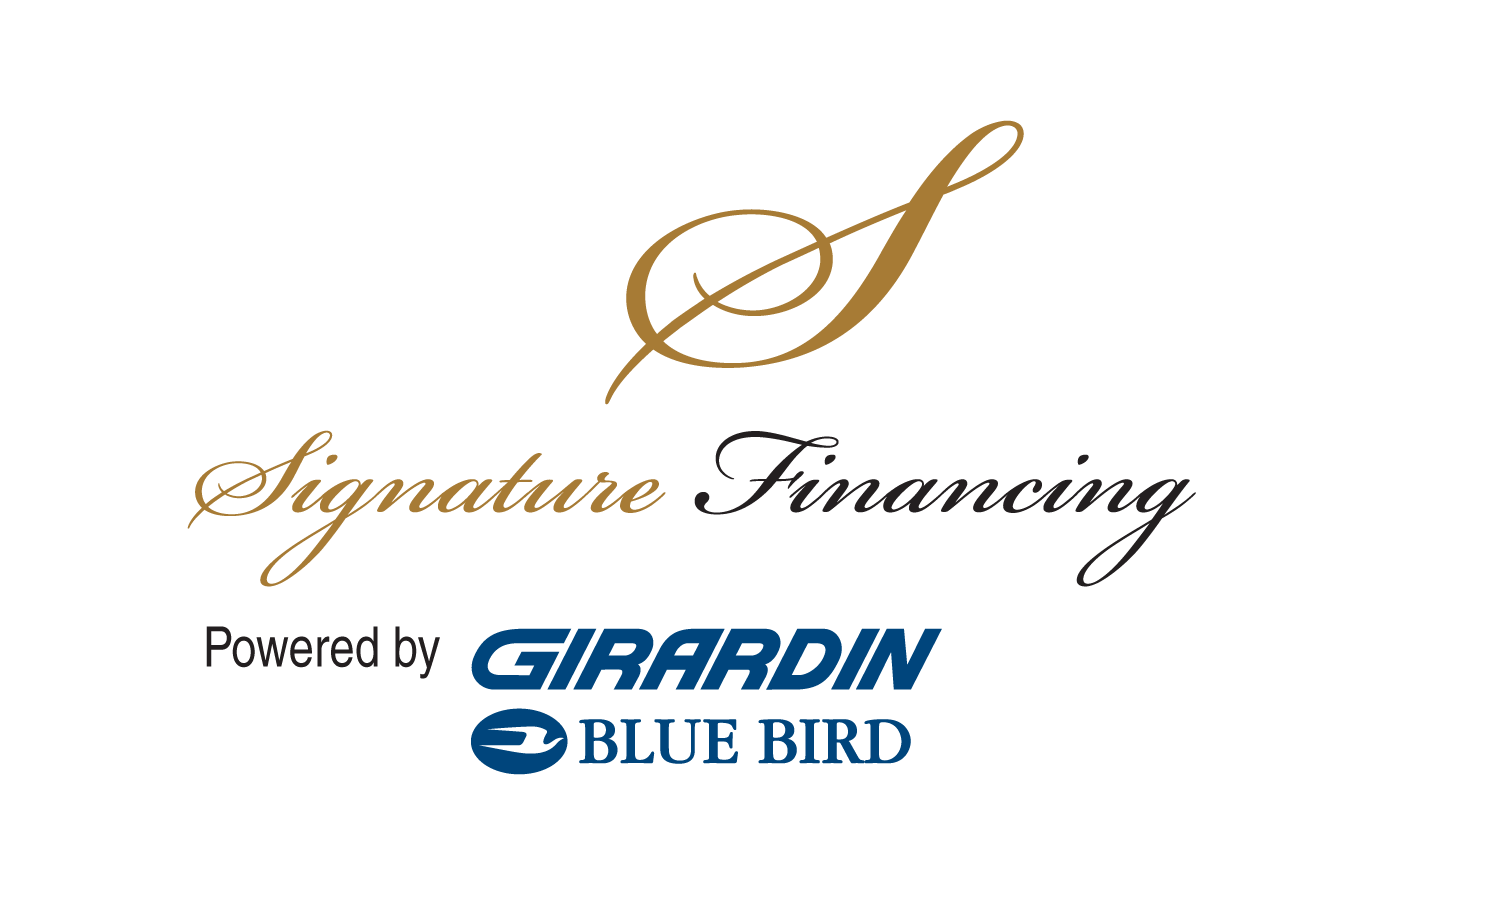 Logo Signature Financing version finale